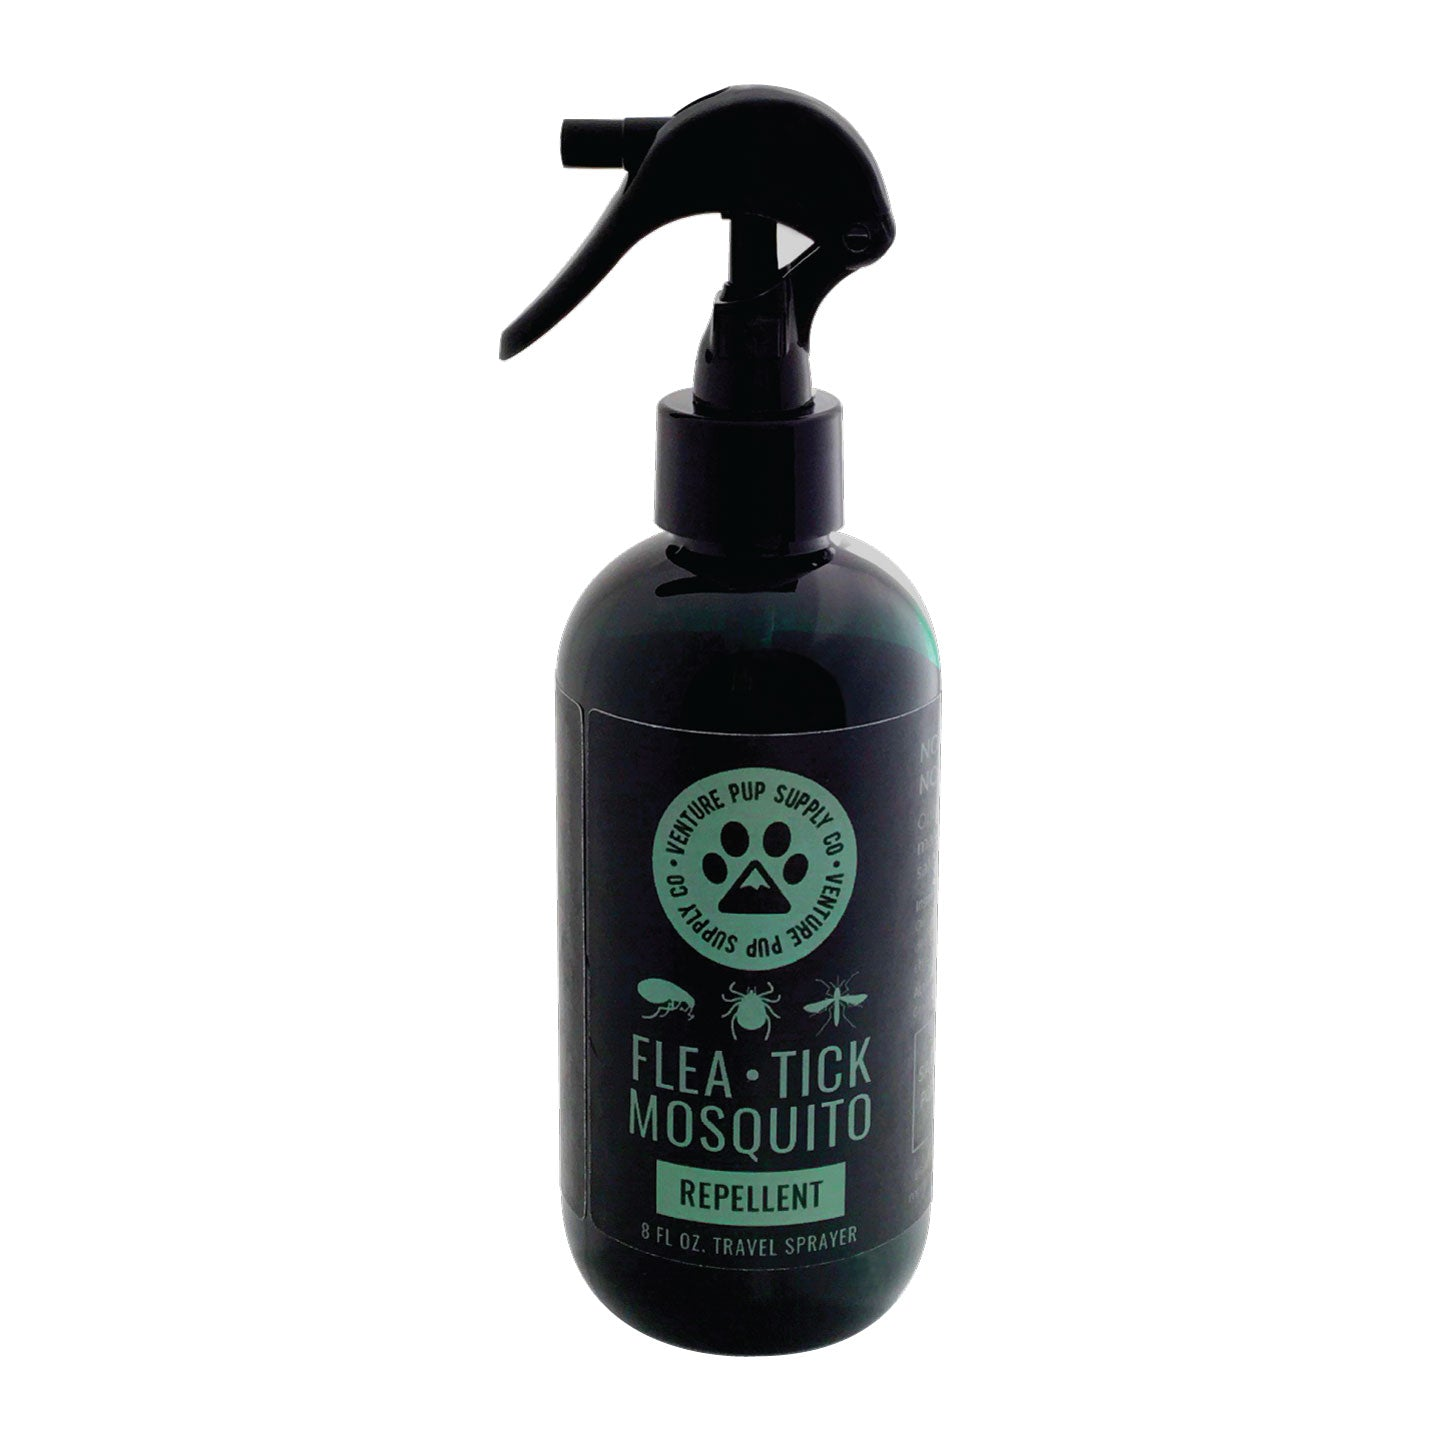 Flea, Tick, Mosquito Repellent